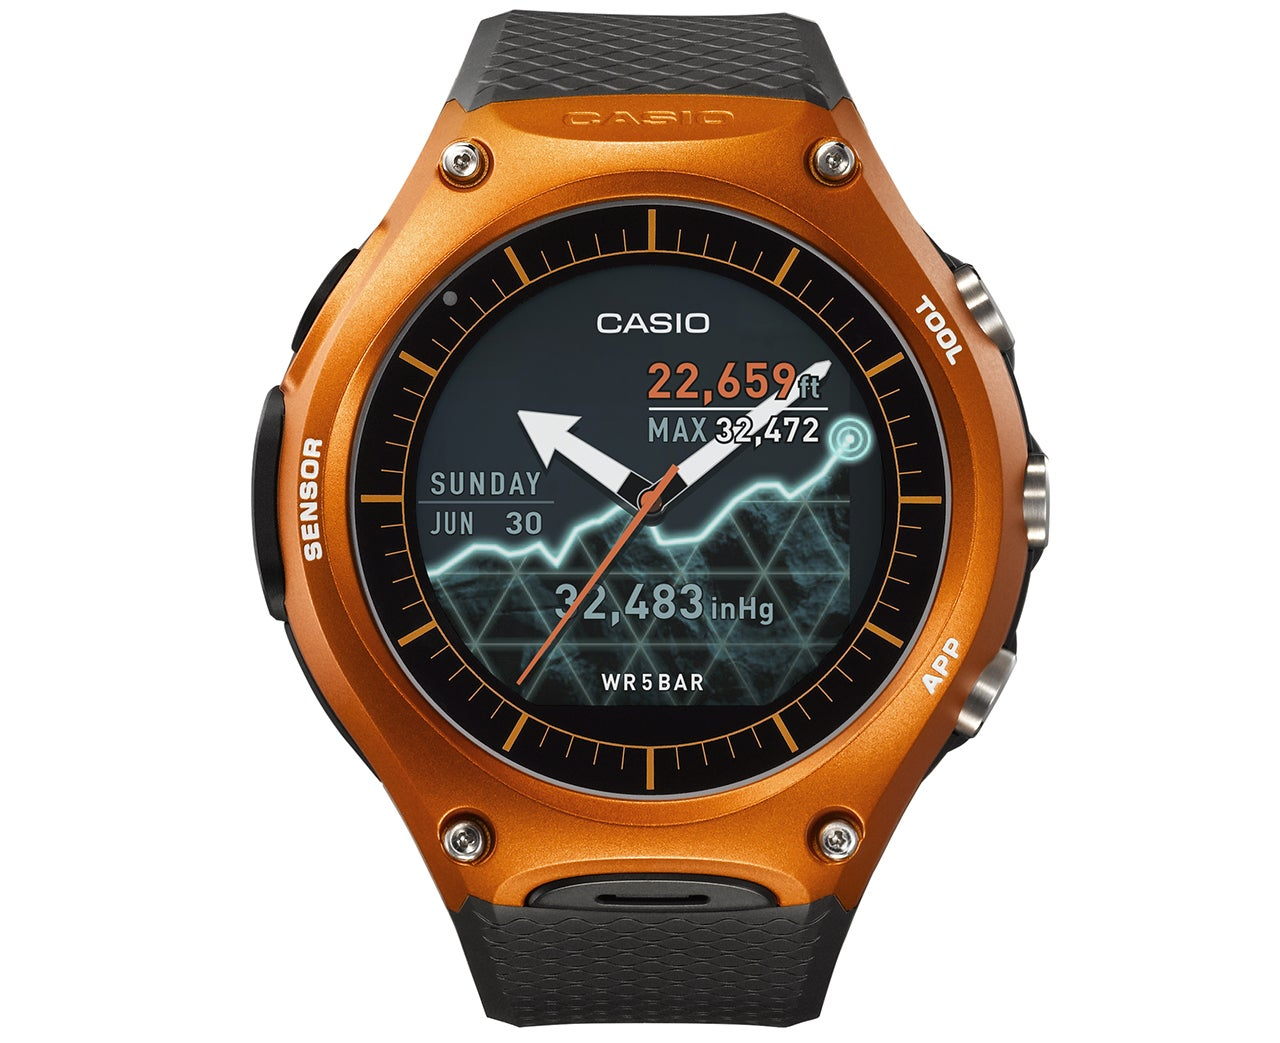 Casio's Sensor-Packed Android Wear Watch Can Survive the Outdoors Longer Than You